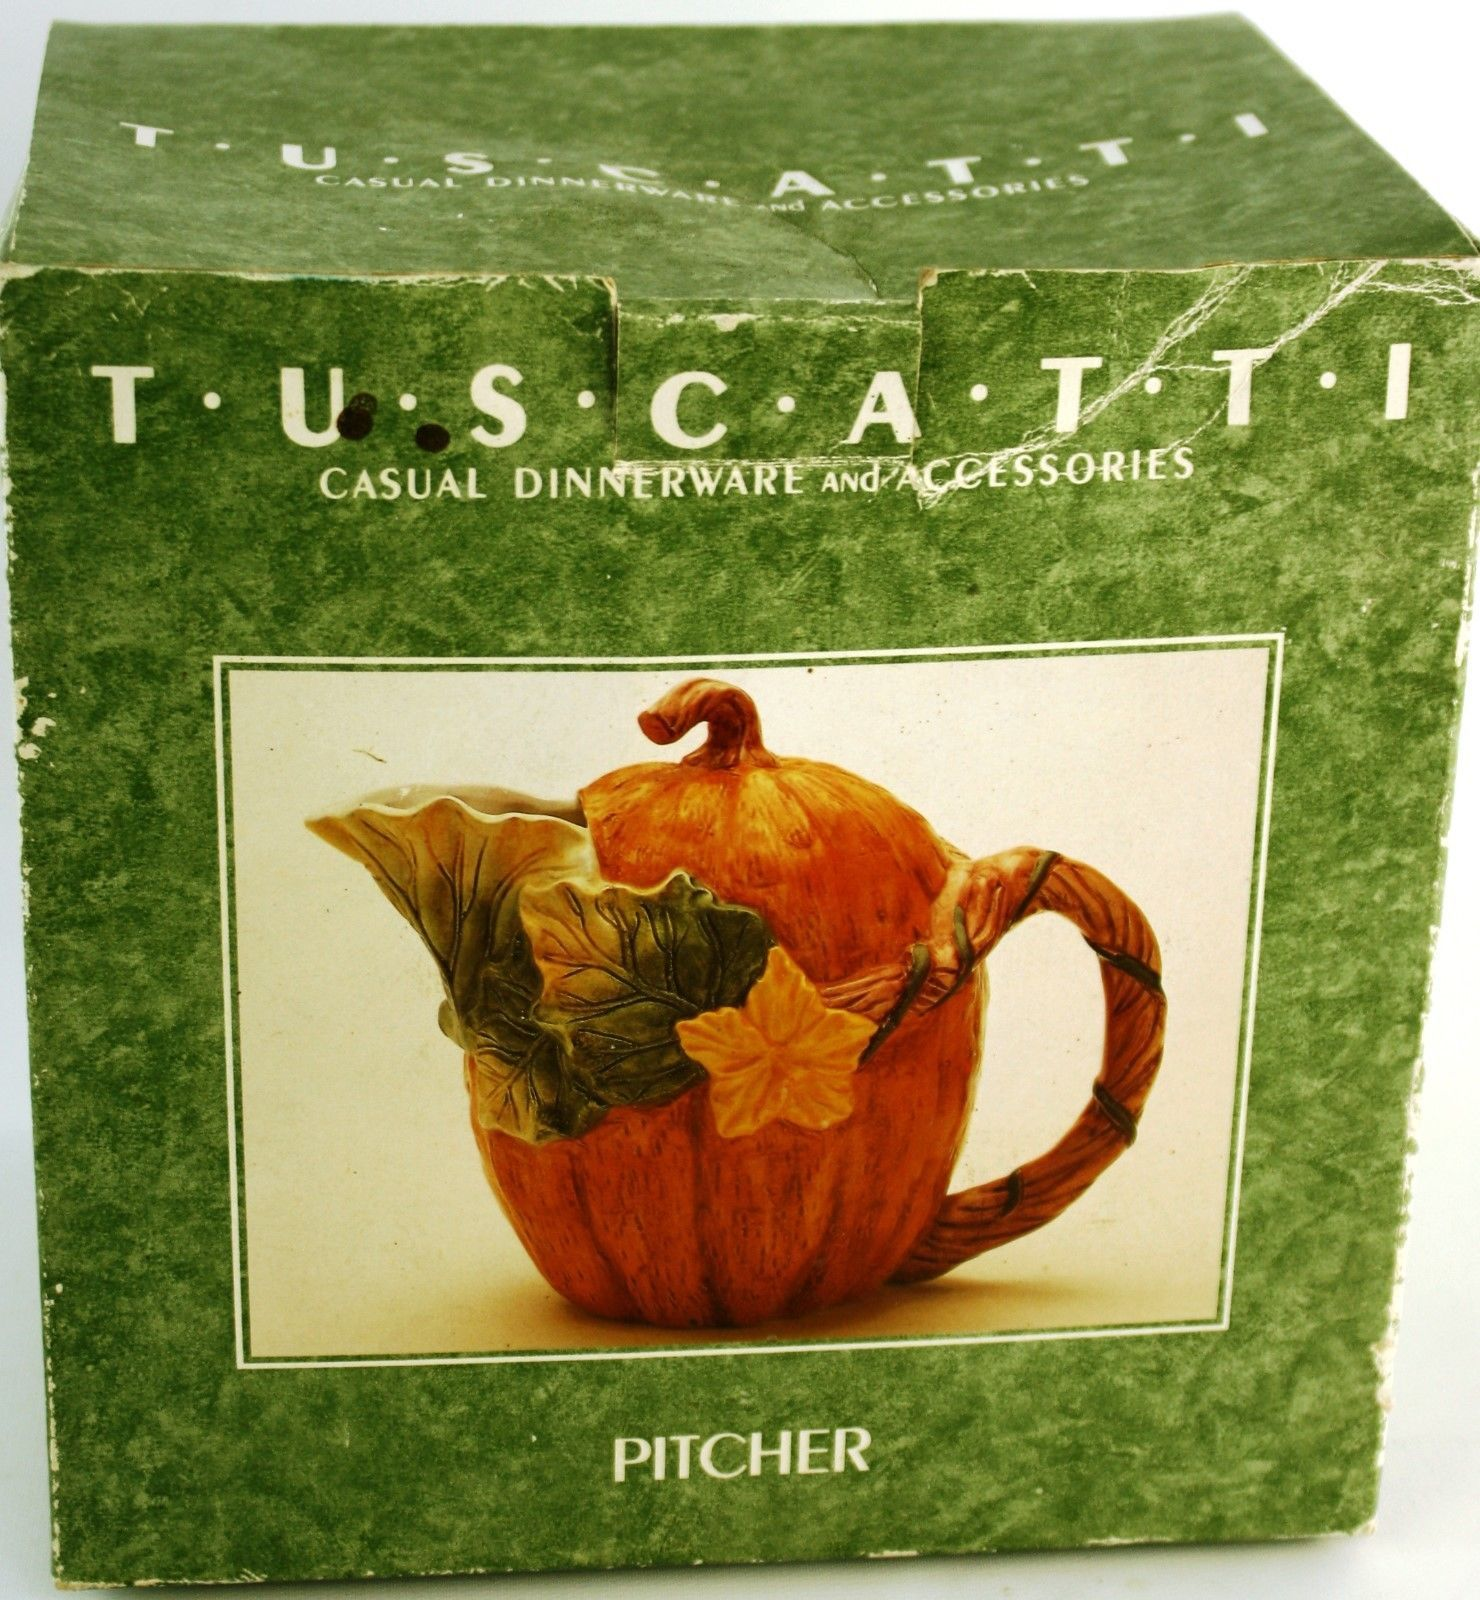 Primary image for Tusaciti Pumpkin Pitcher